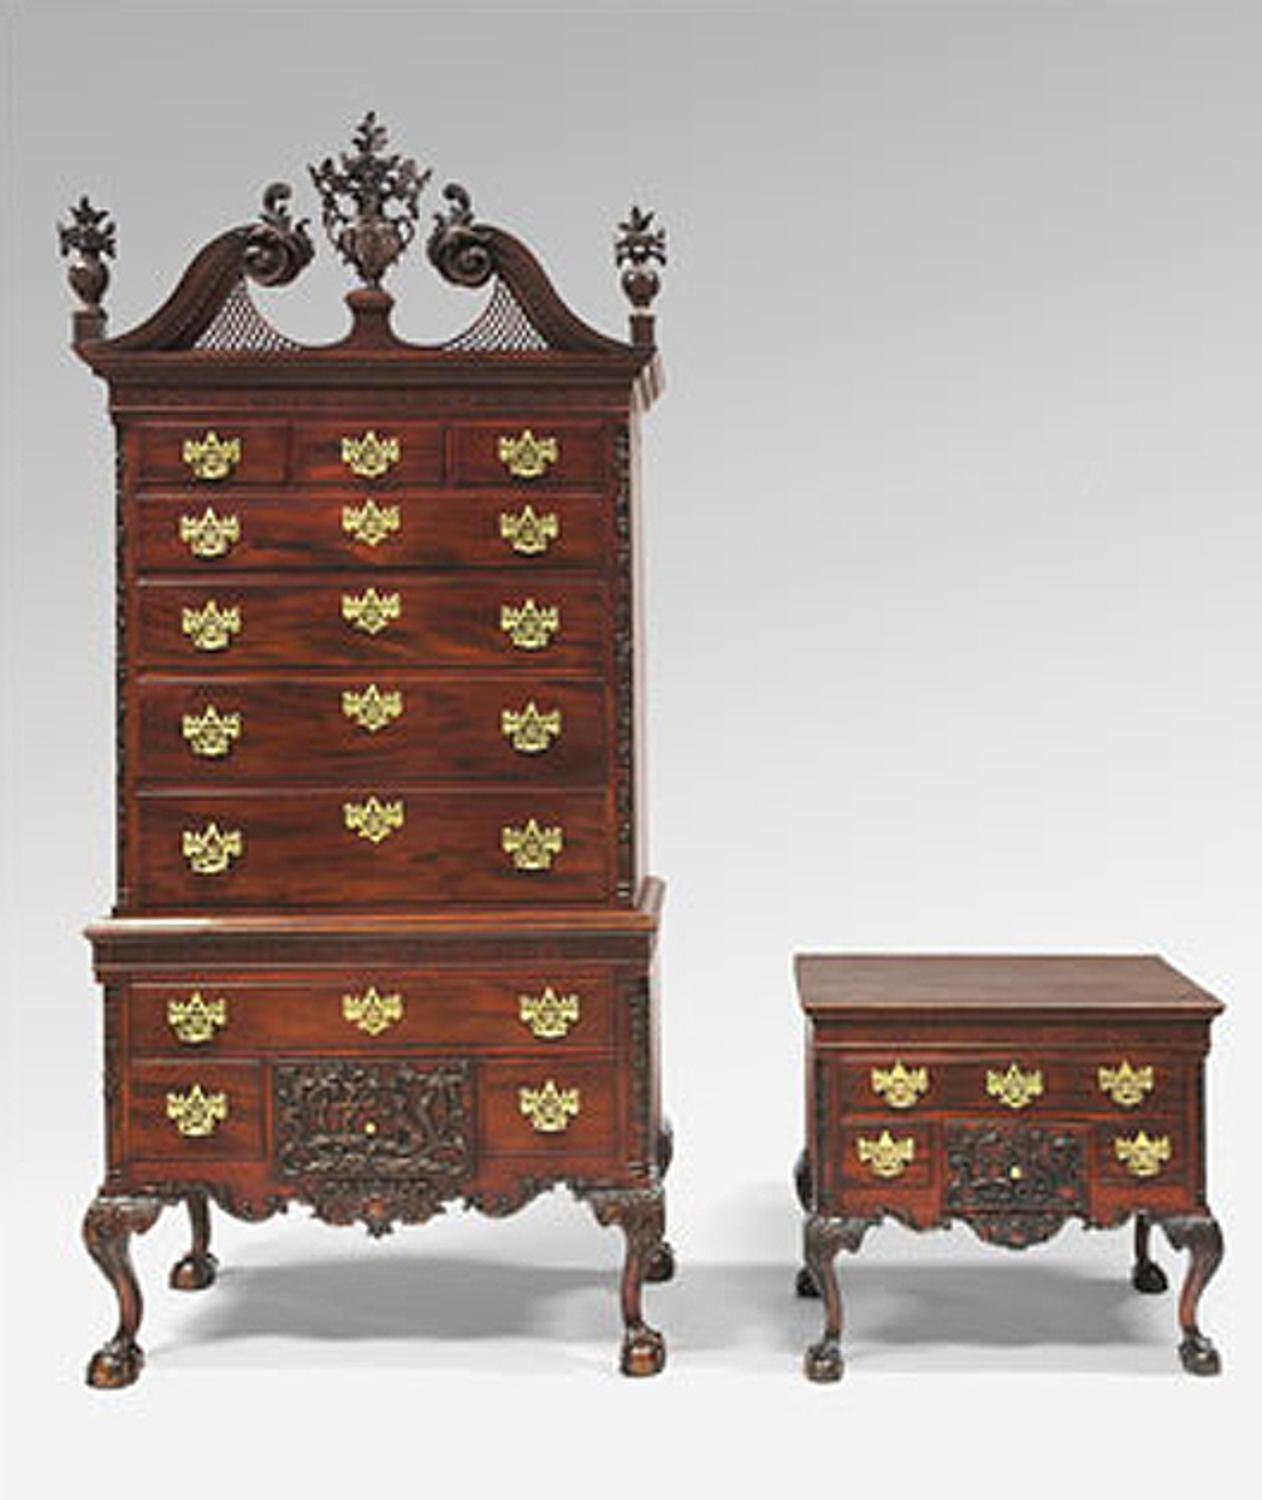 Philadelphia Museum Of Art Acquires U0026quot;The Fox And The Grapesu0026quot;  Dressing Table, Completing The...   Artwire Press Release From  ArtfixDaily.com